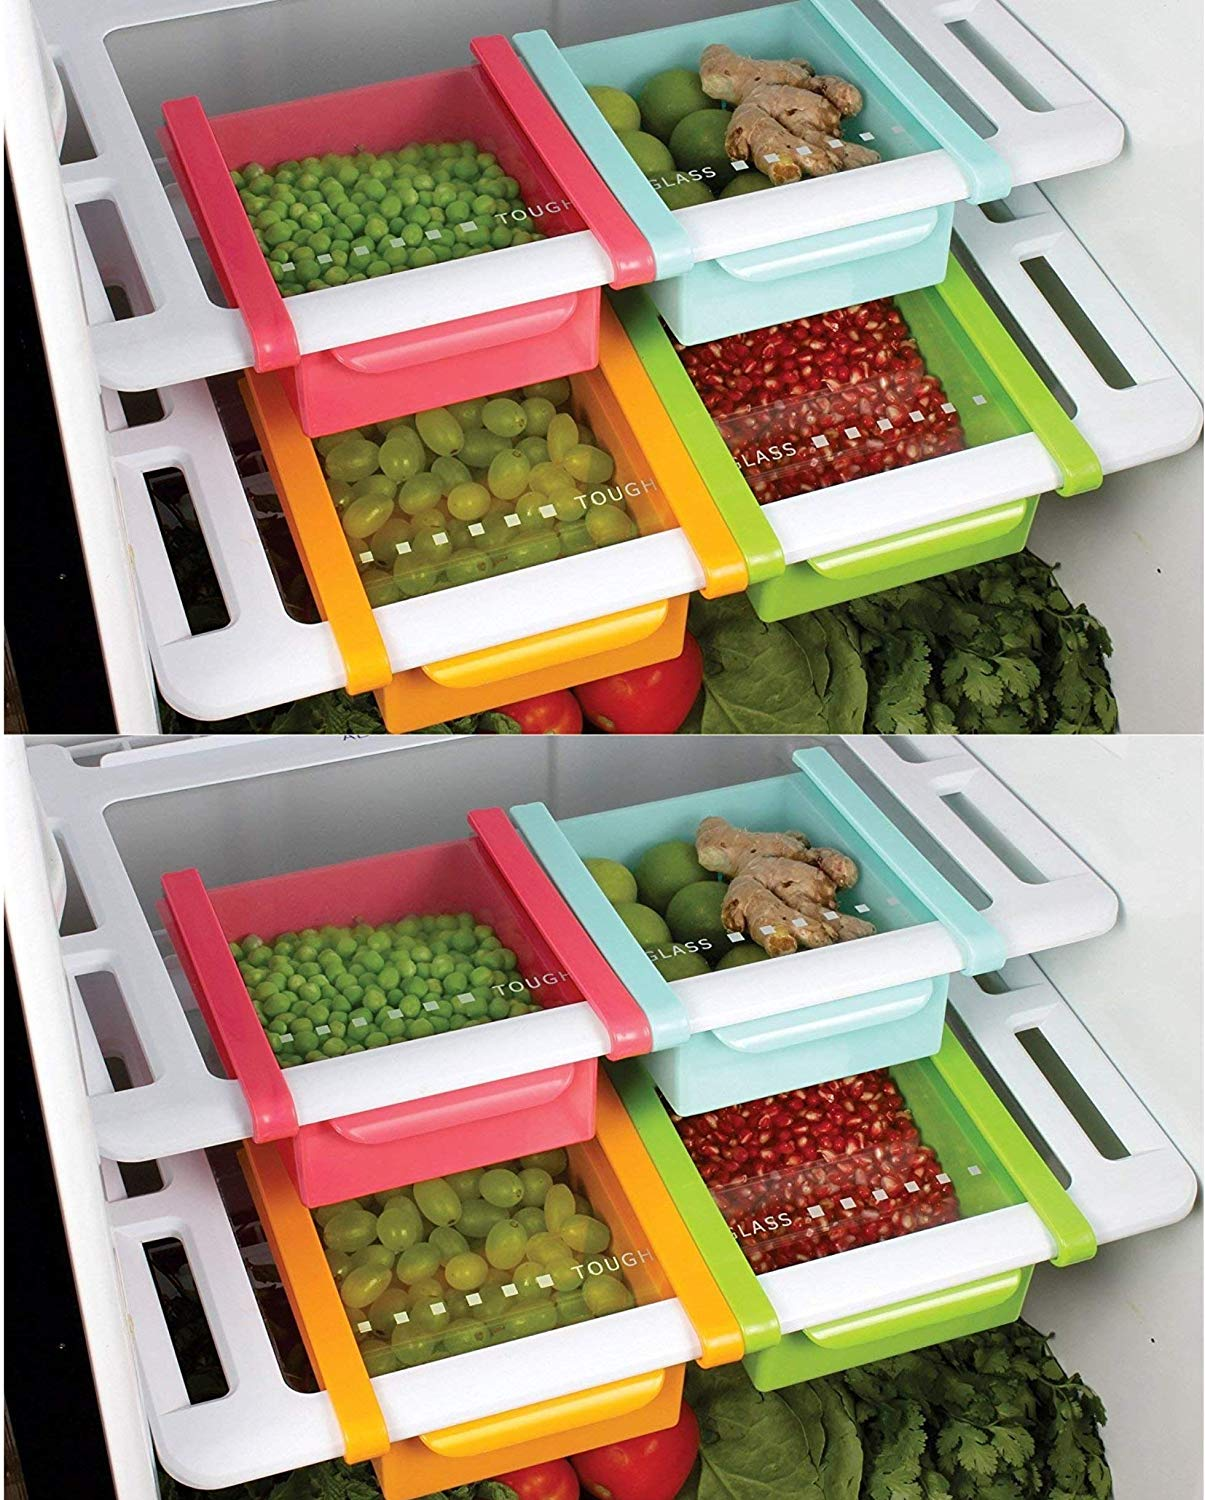 MOUNTHILLS Plastic Fridge Space Slide, Tray & Refrigerator Storage Rack Set (Multicolor, Pack of 8)